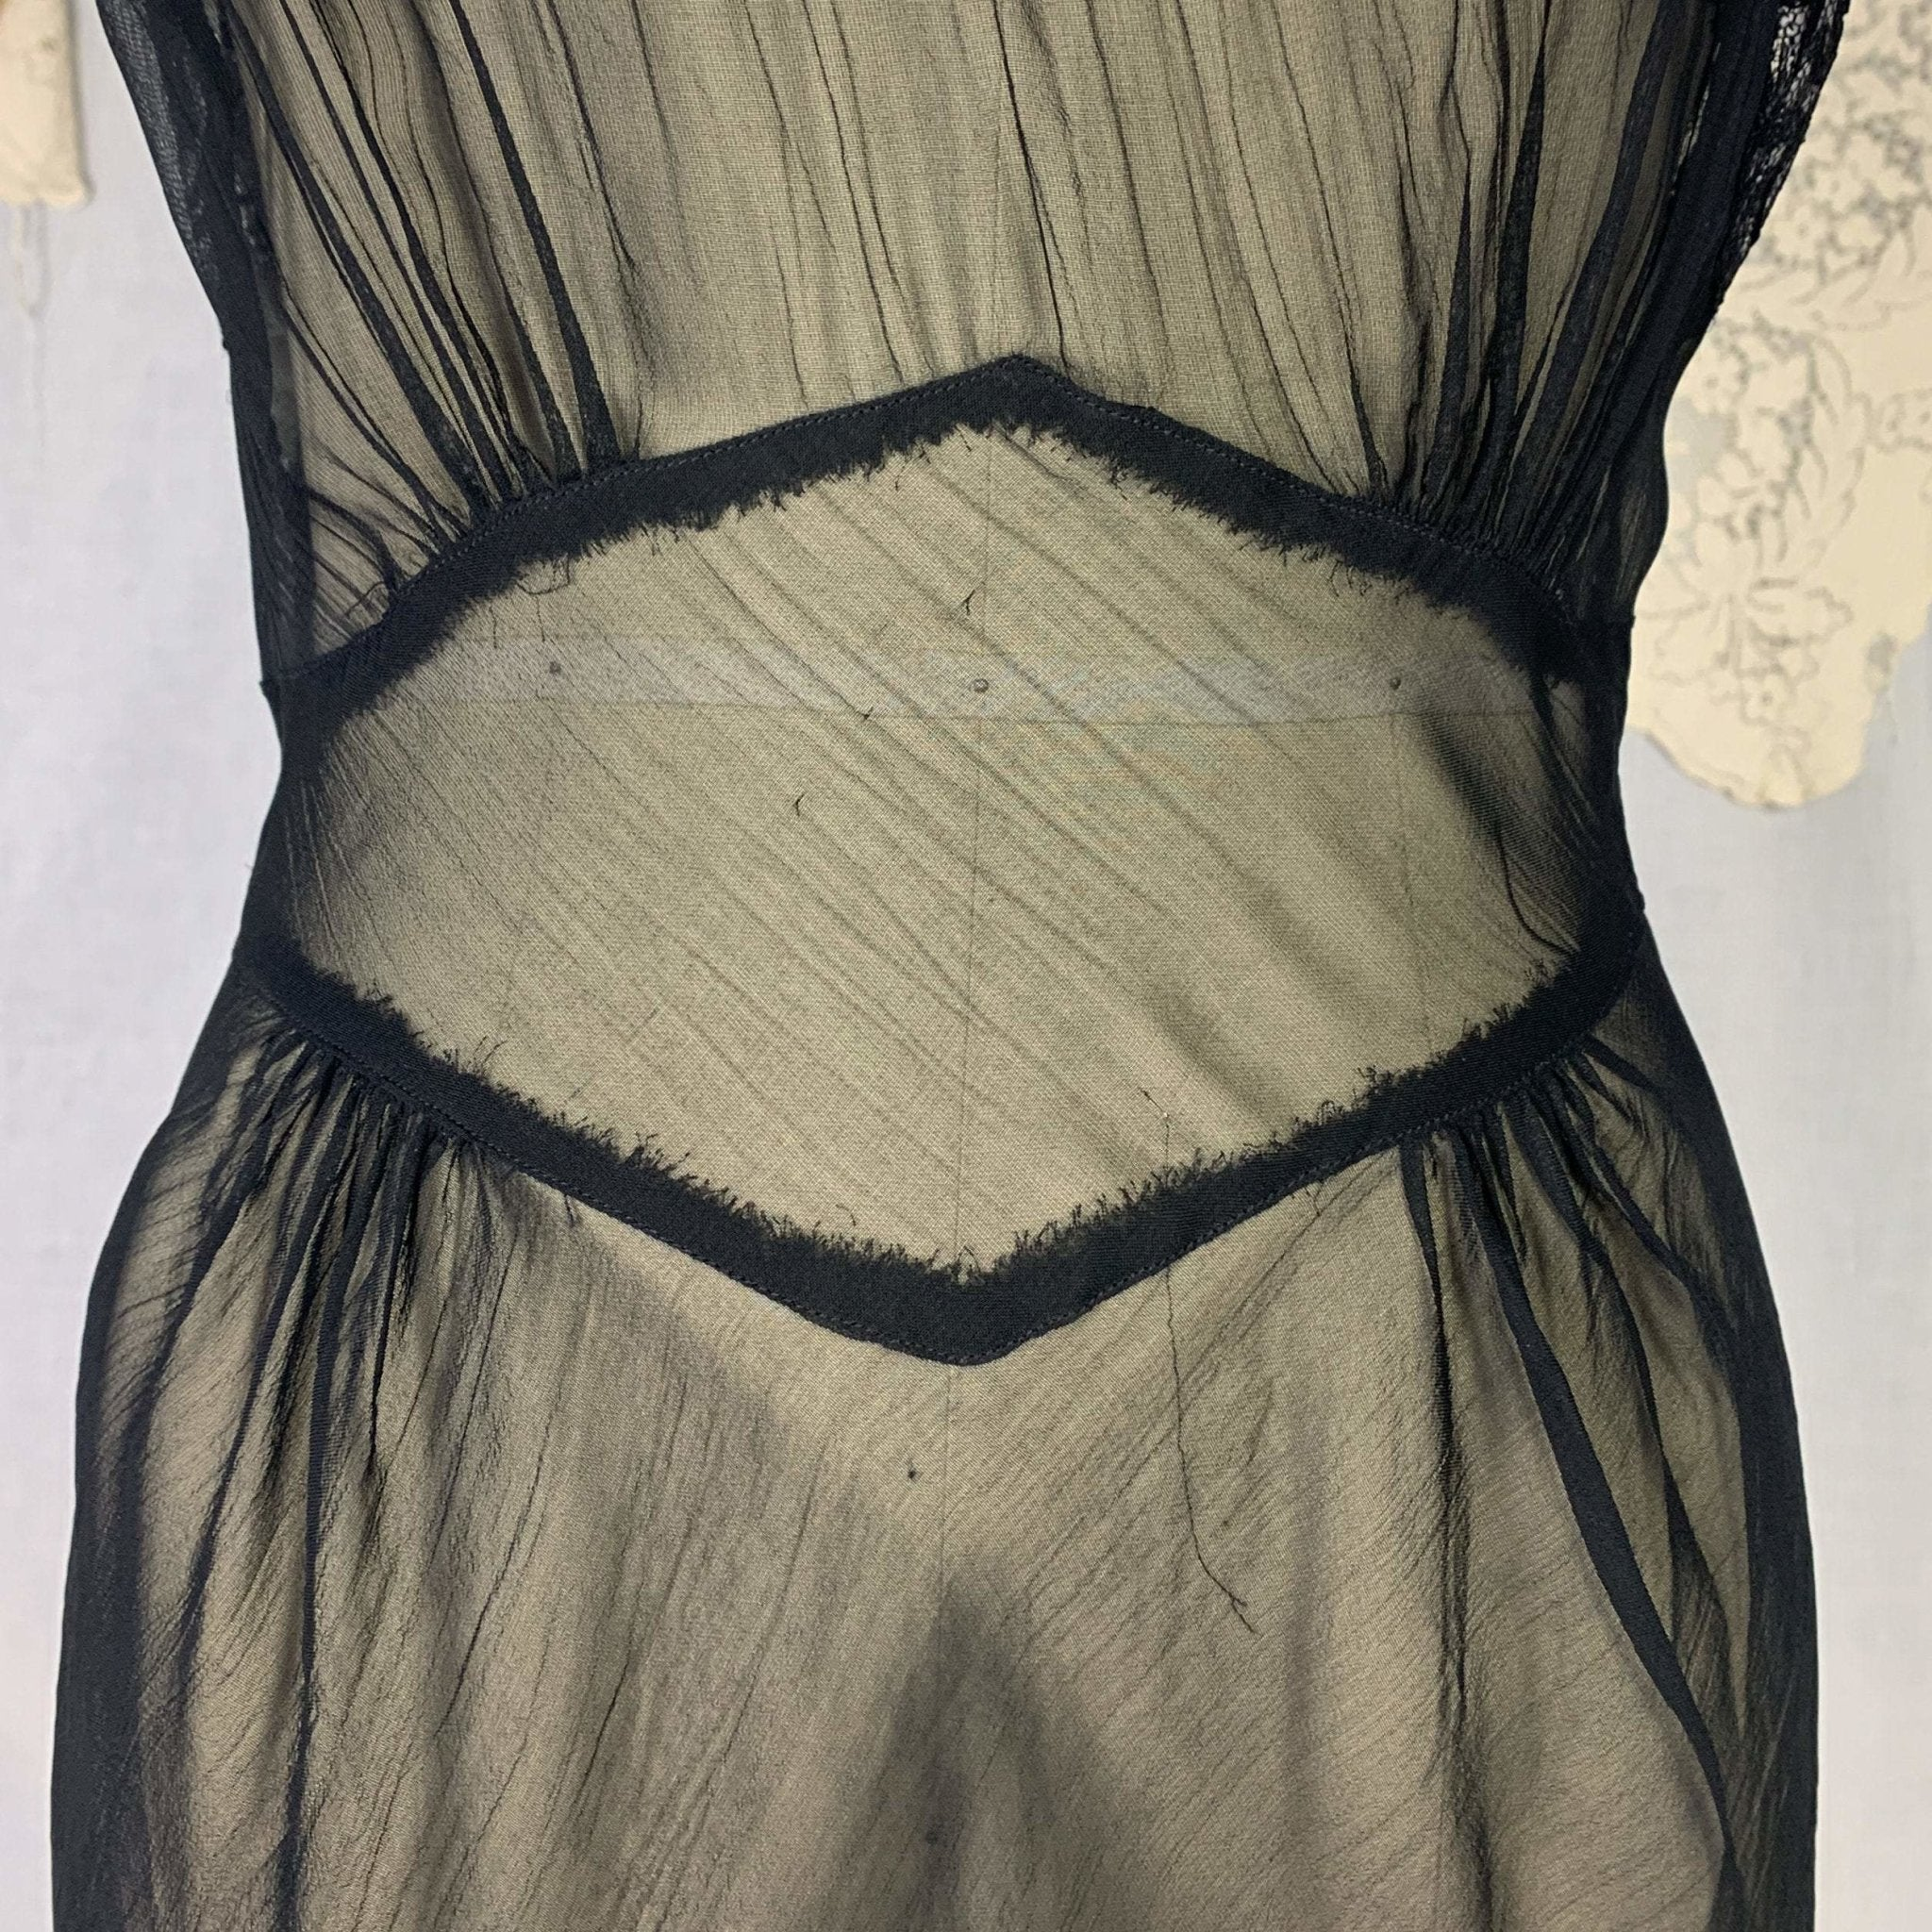 Vintage 1940's Nightgown | Sheer Black Rayon Chiffon with Icy Blue Ribbon & Lace | Size S | Never Worn - Daggers & Dames